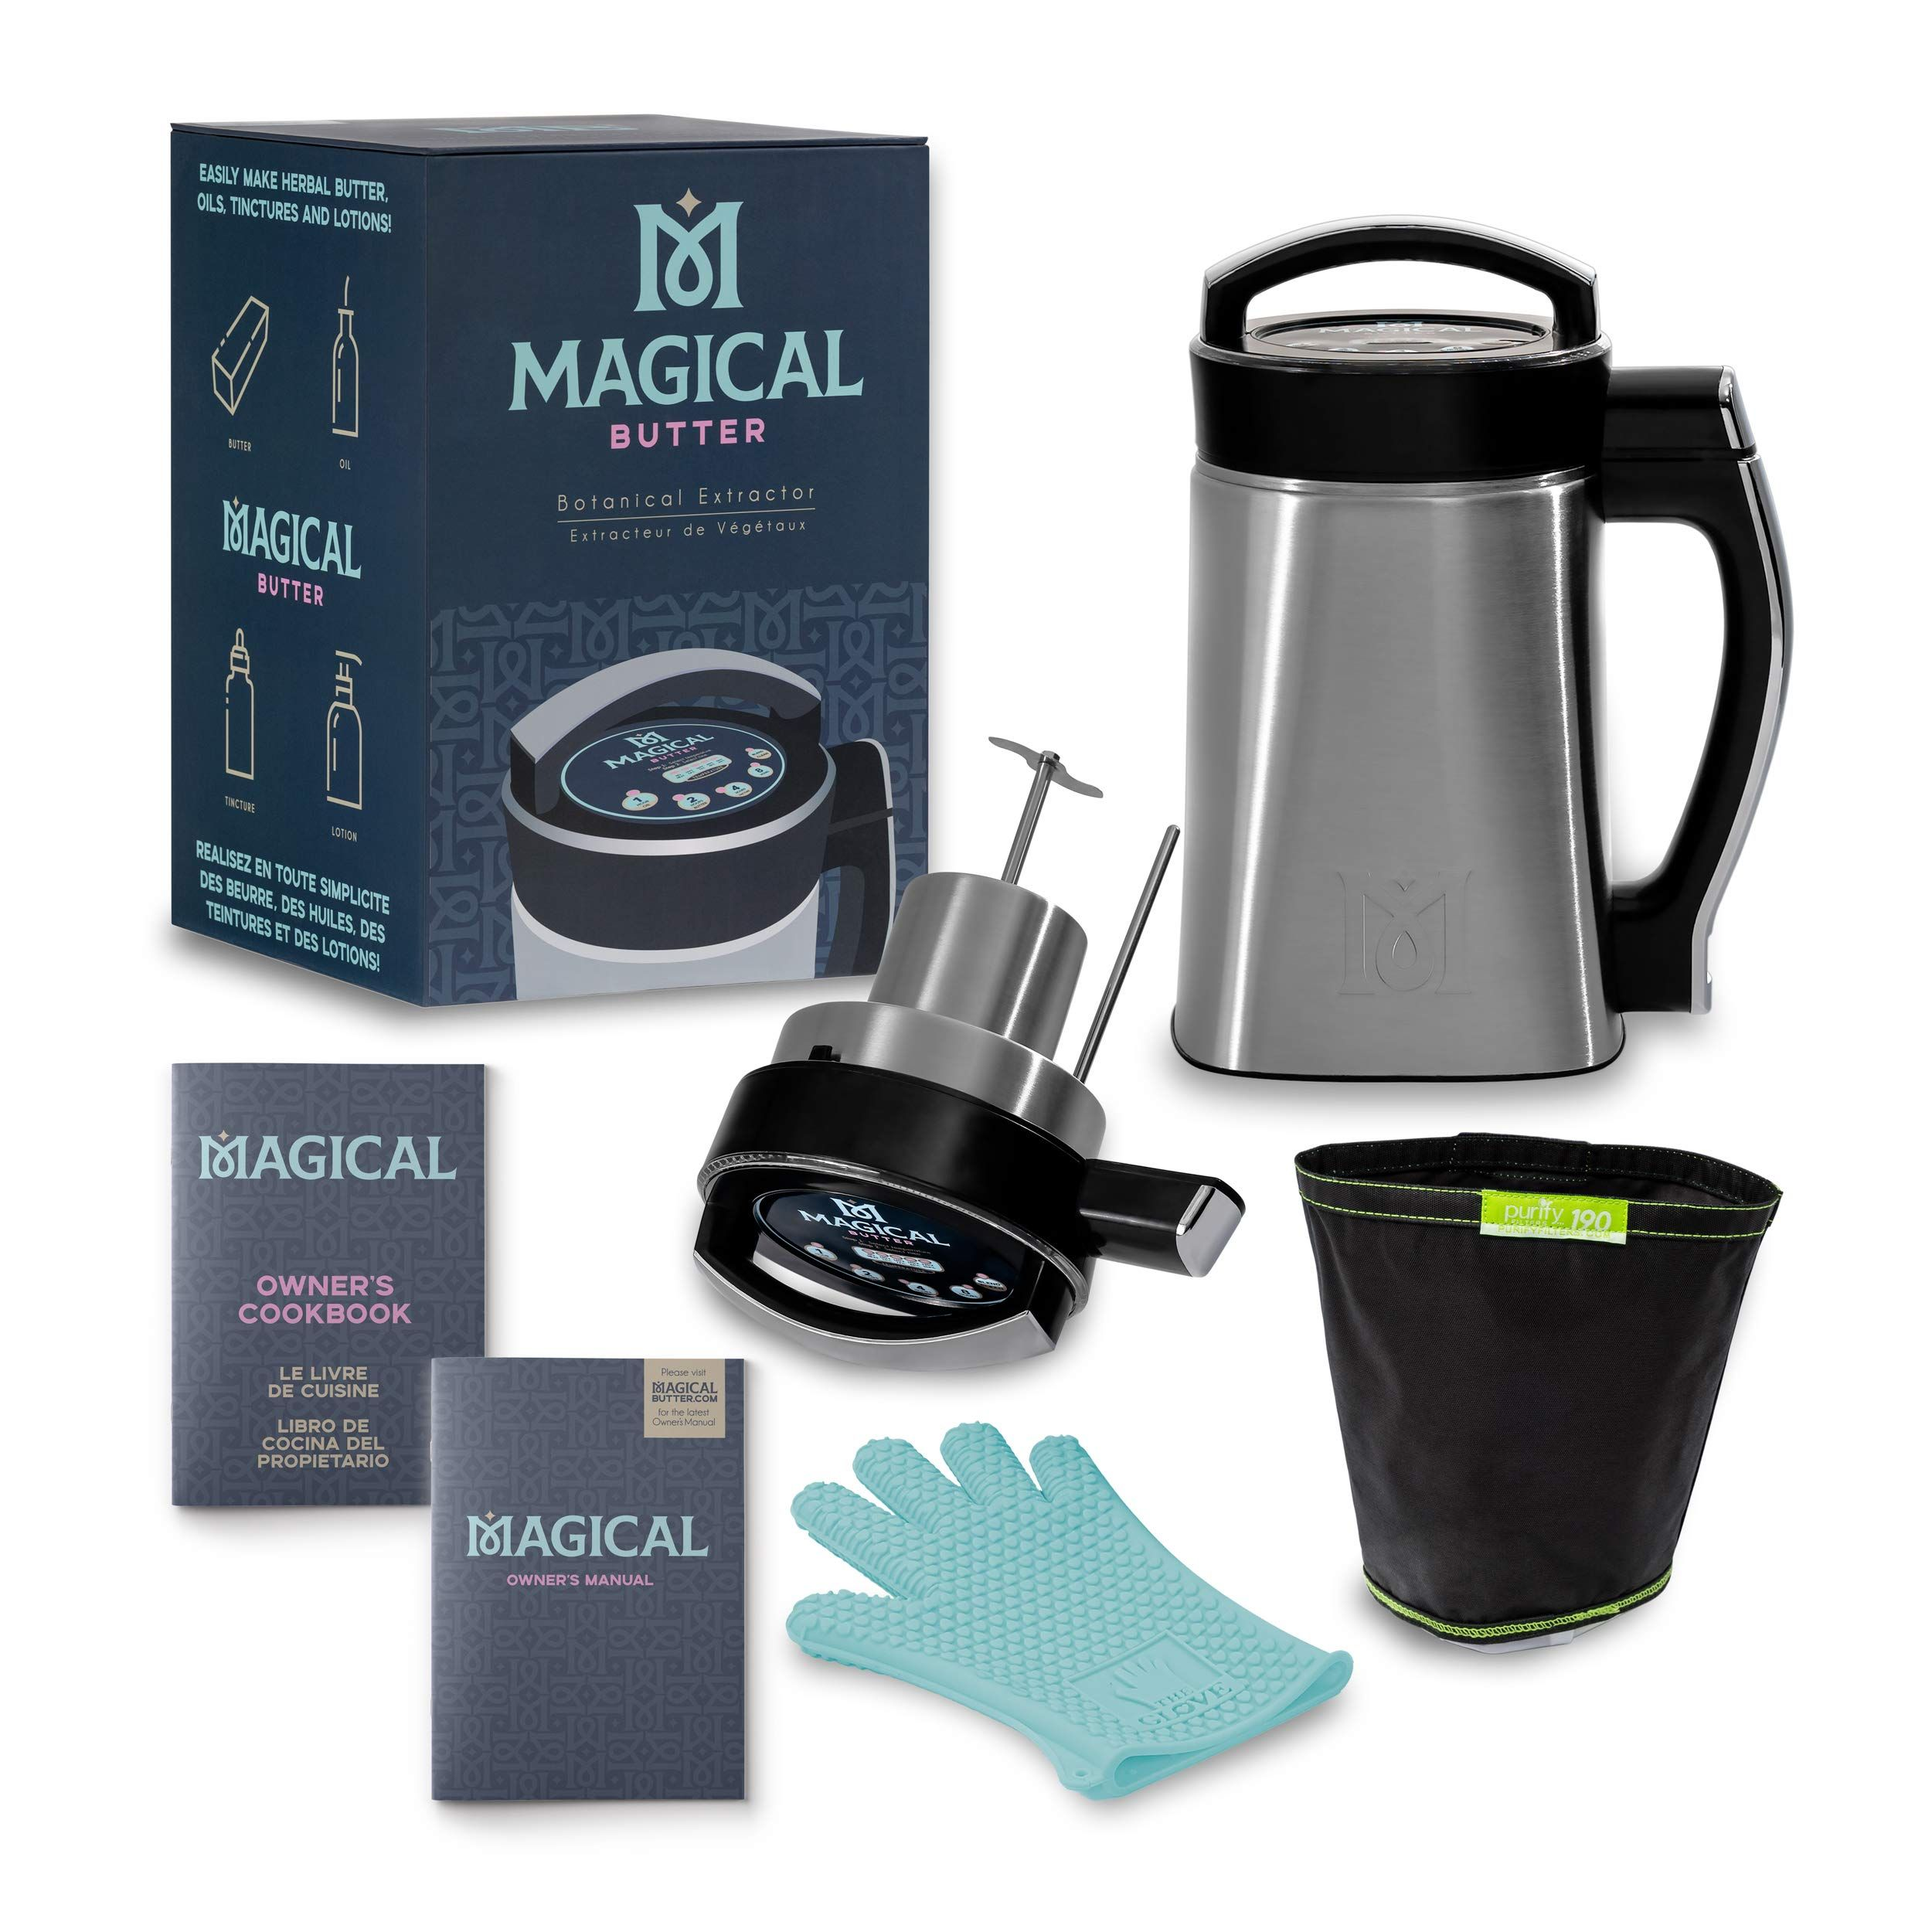 Magical butter mb2e botanical extractor machine with